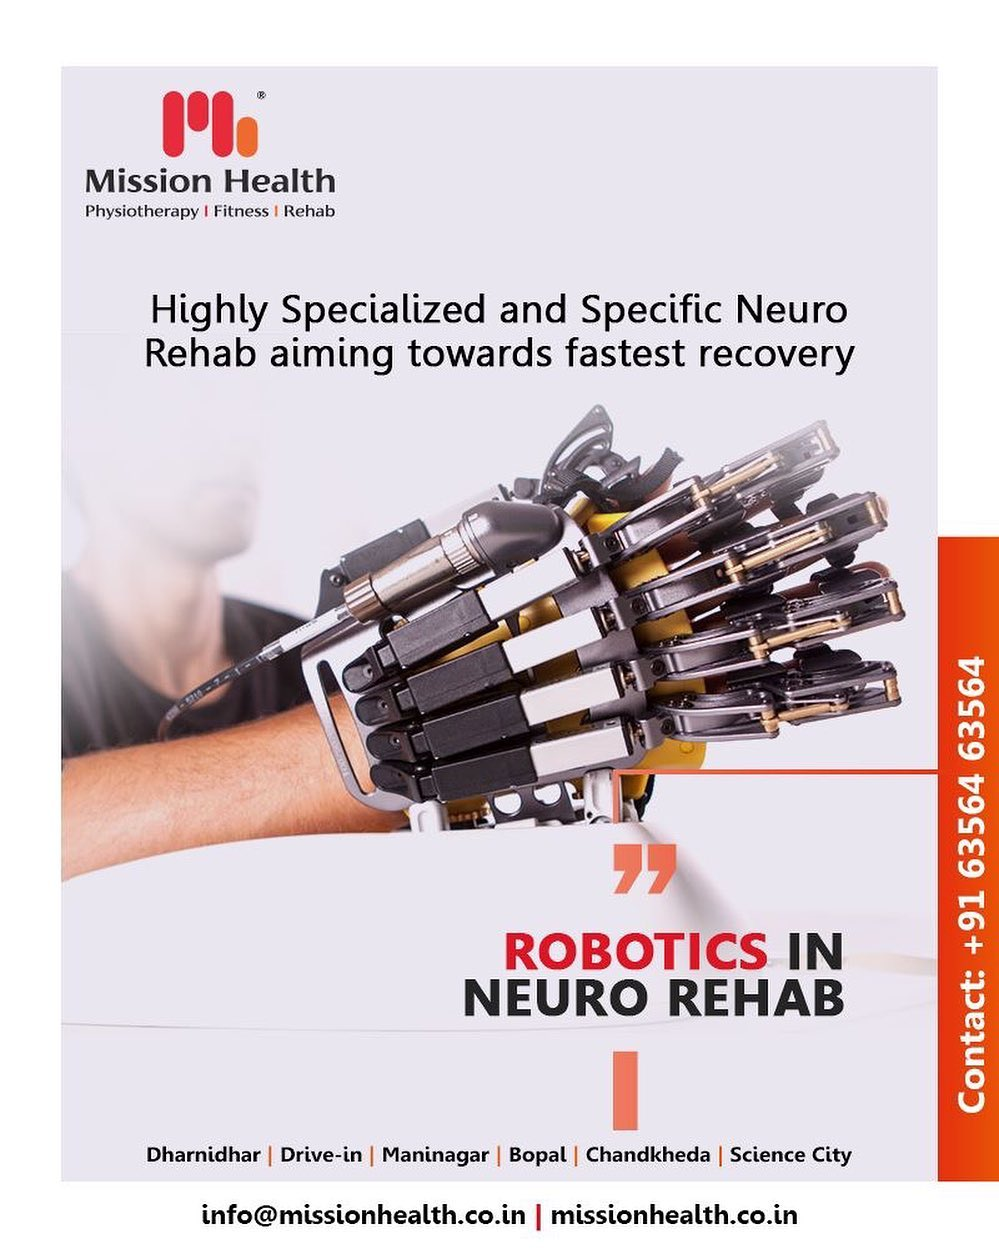 Robotics in Neuro Rehab enables the patients to return to the highest level of function and independence possible while improving Physical, Mental & Social quality of life.  #RoboticsNeuroRehab #roboticsinneurophysiotherapy #neurophysiotherapy #MissionHealth #MissionHealthIndia #AbilityClinic #MovementIsLife